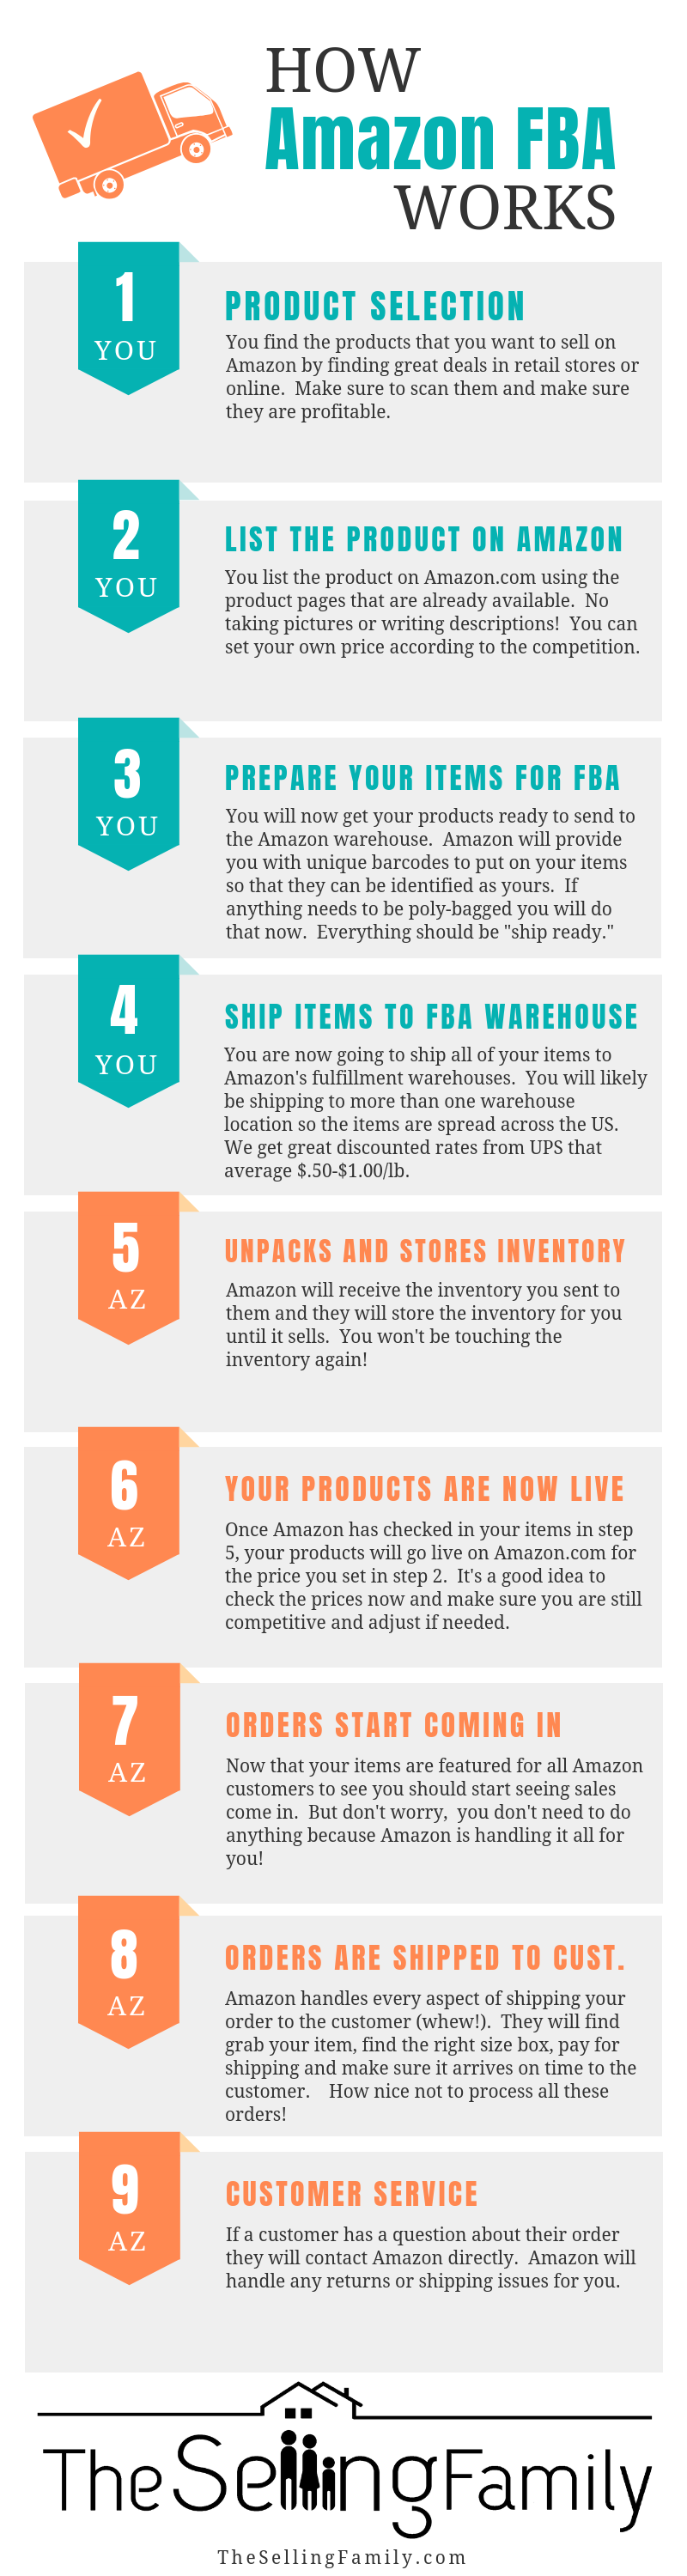 How Amazon FBA Works Infographic